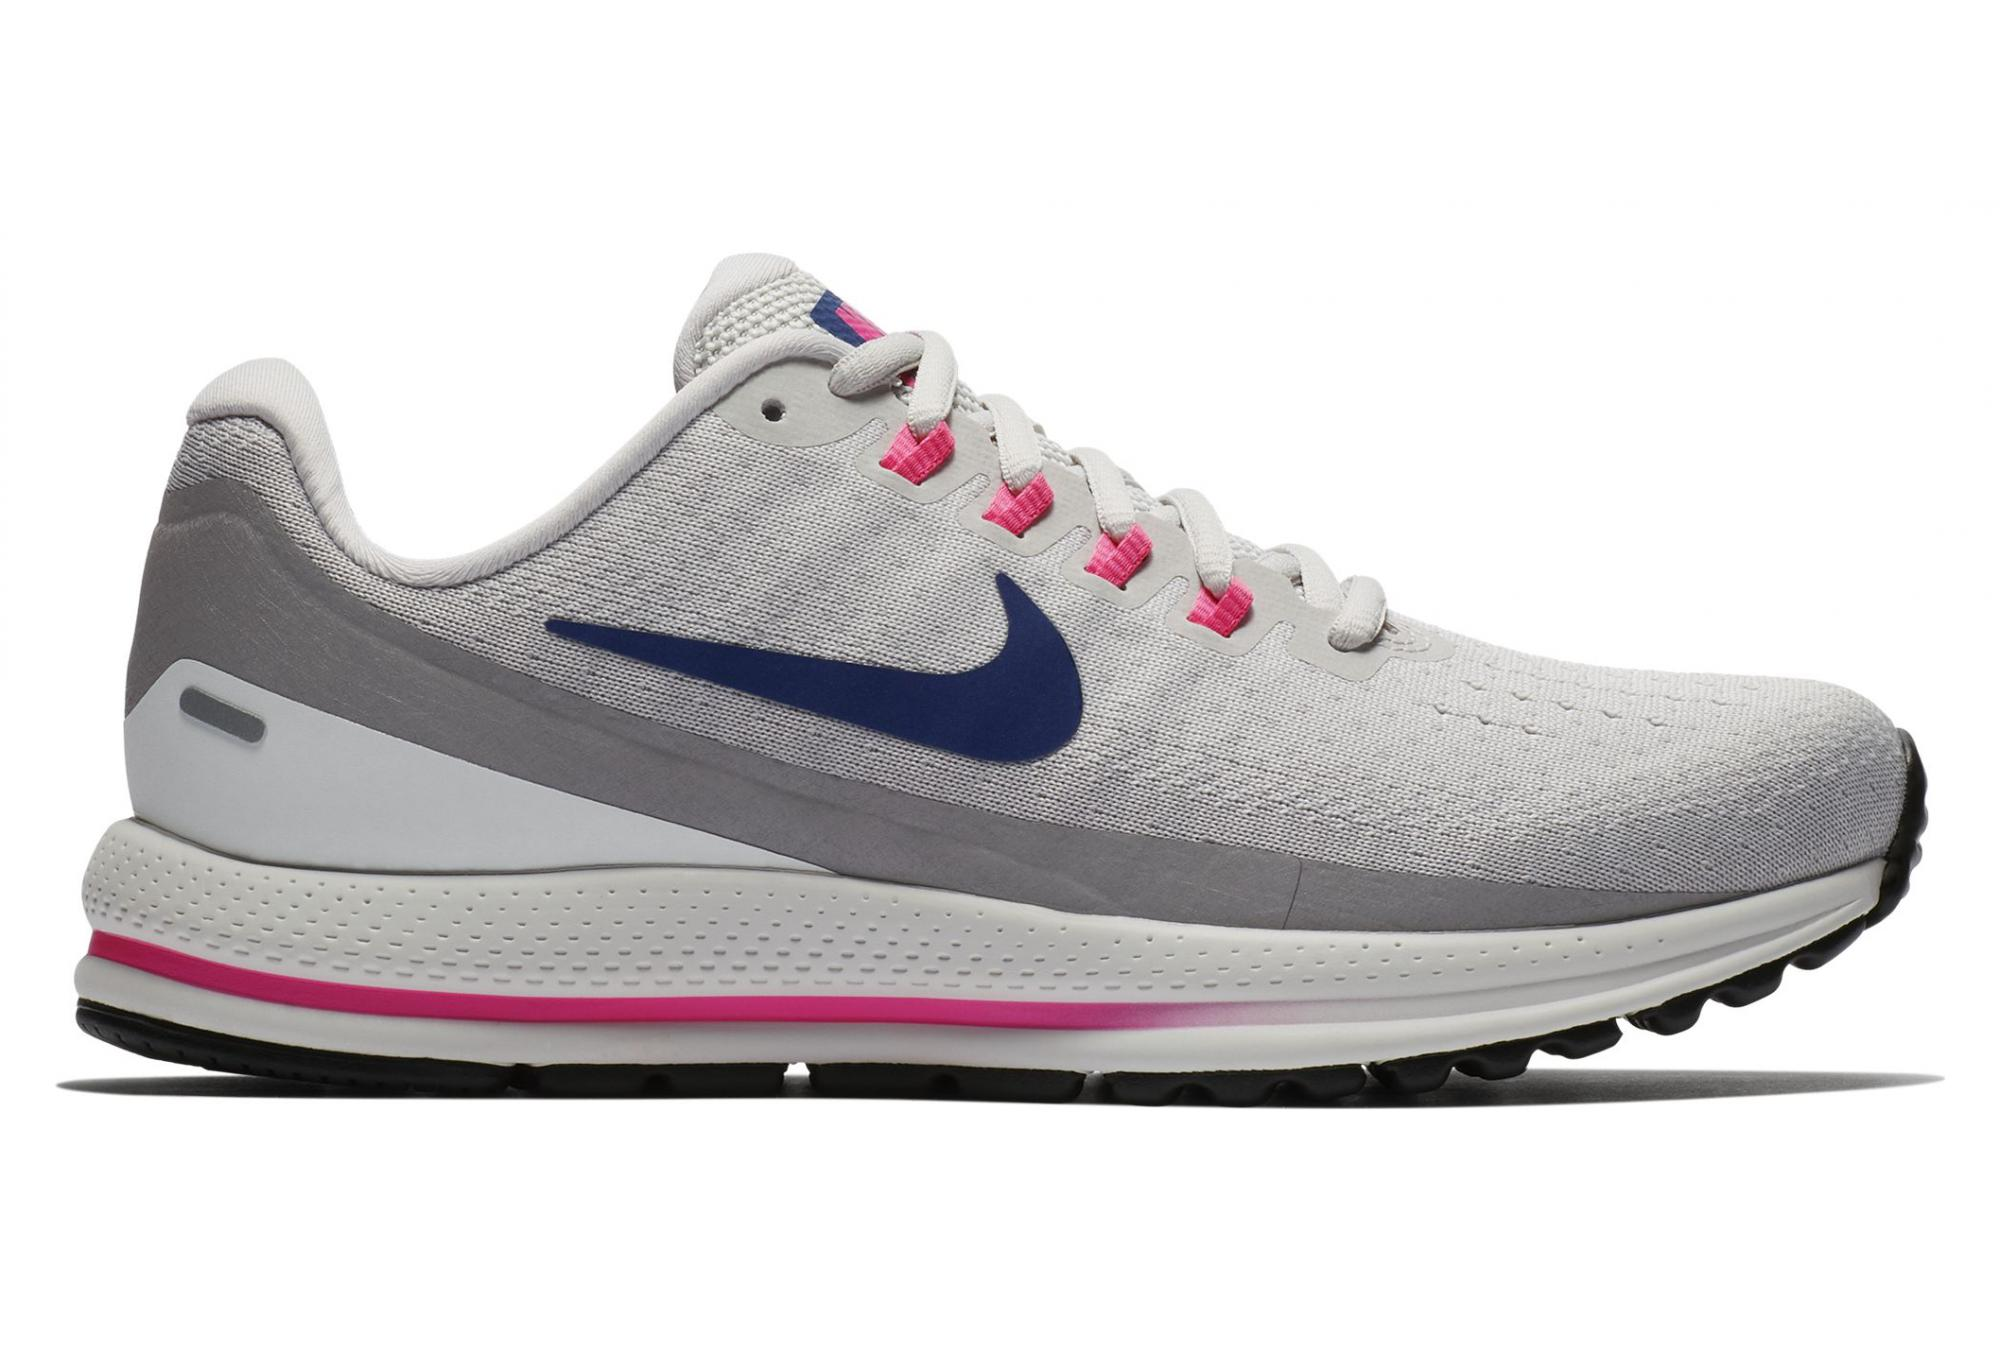 5f186f1ddaa22 Nike Shoes Air Zoom Vomero 13 Grey Blue Pink Women